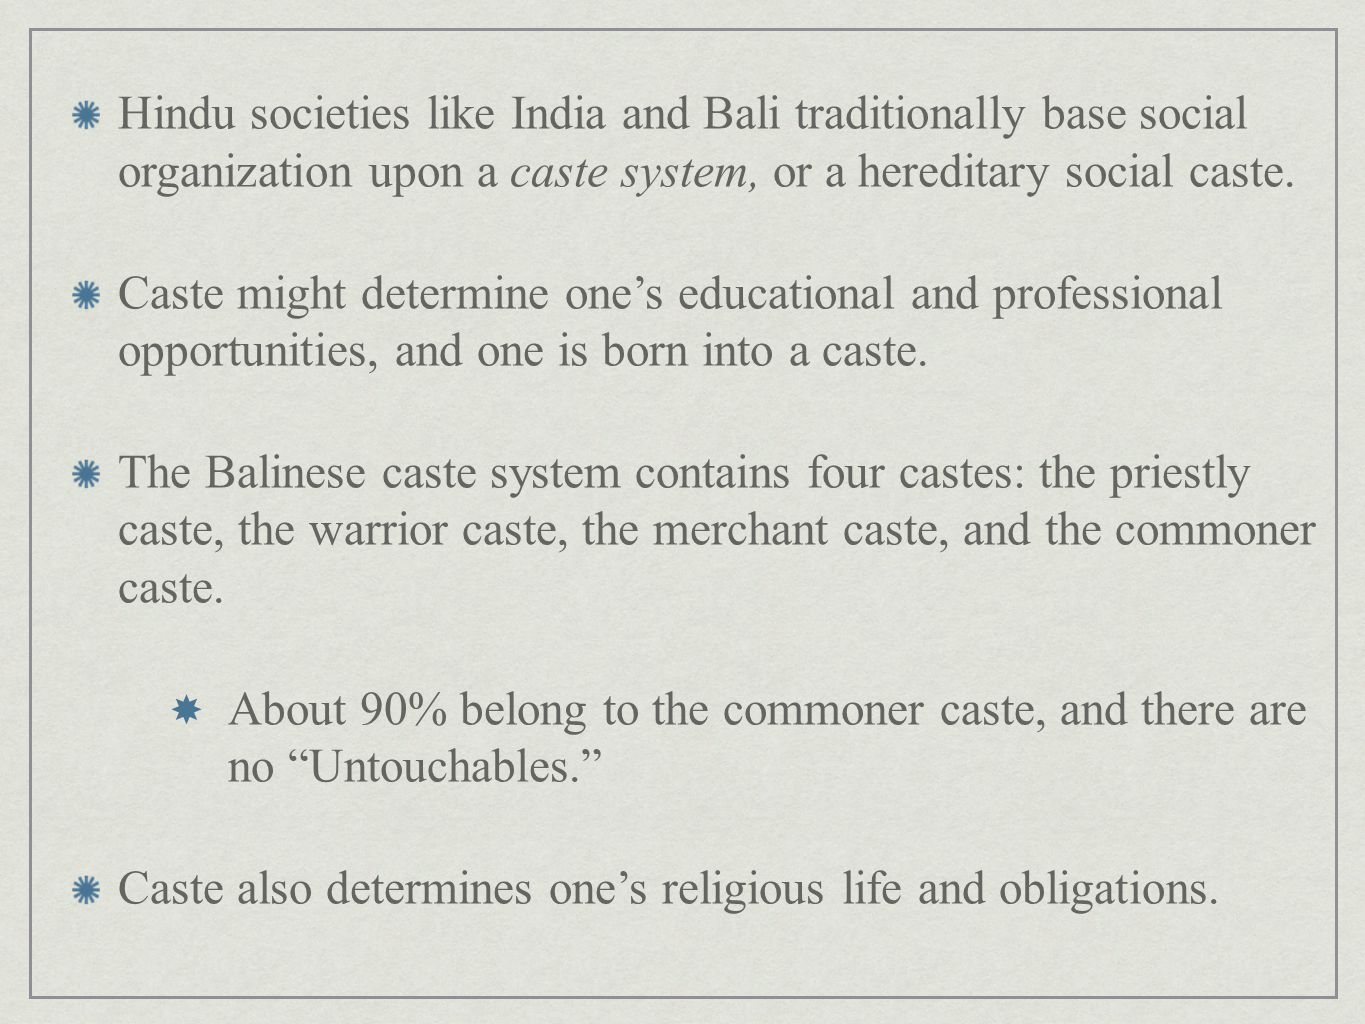 Hindu societies like India and Bali traditionally base social organization upon a caste system, or a hereditary social caste.